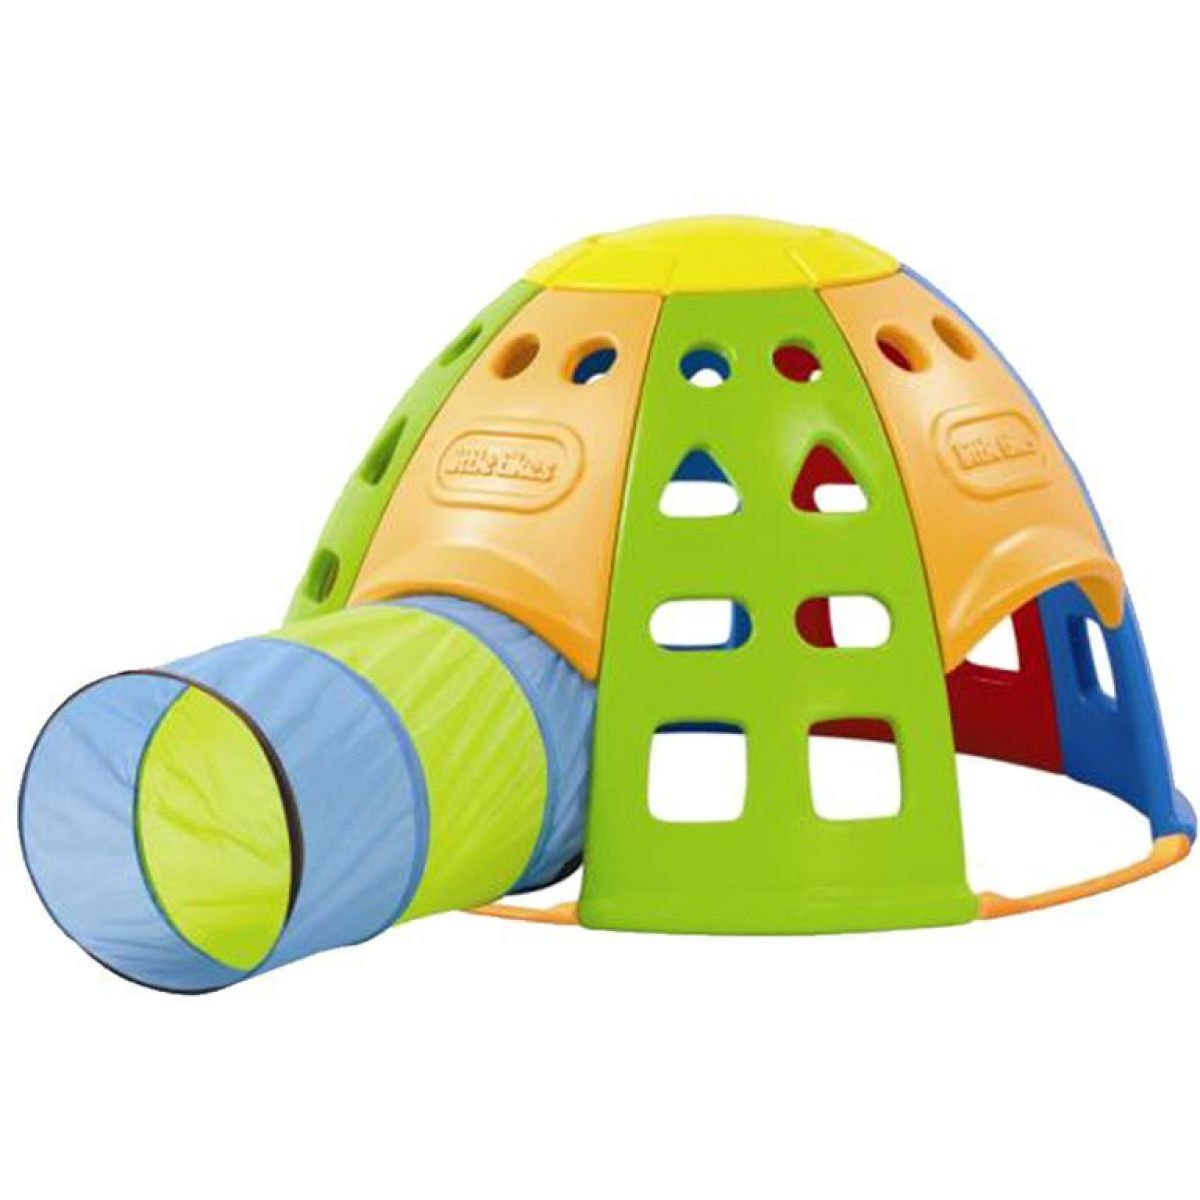 Little Tikes Tunnel 'N Dome Climber